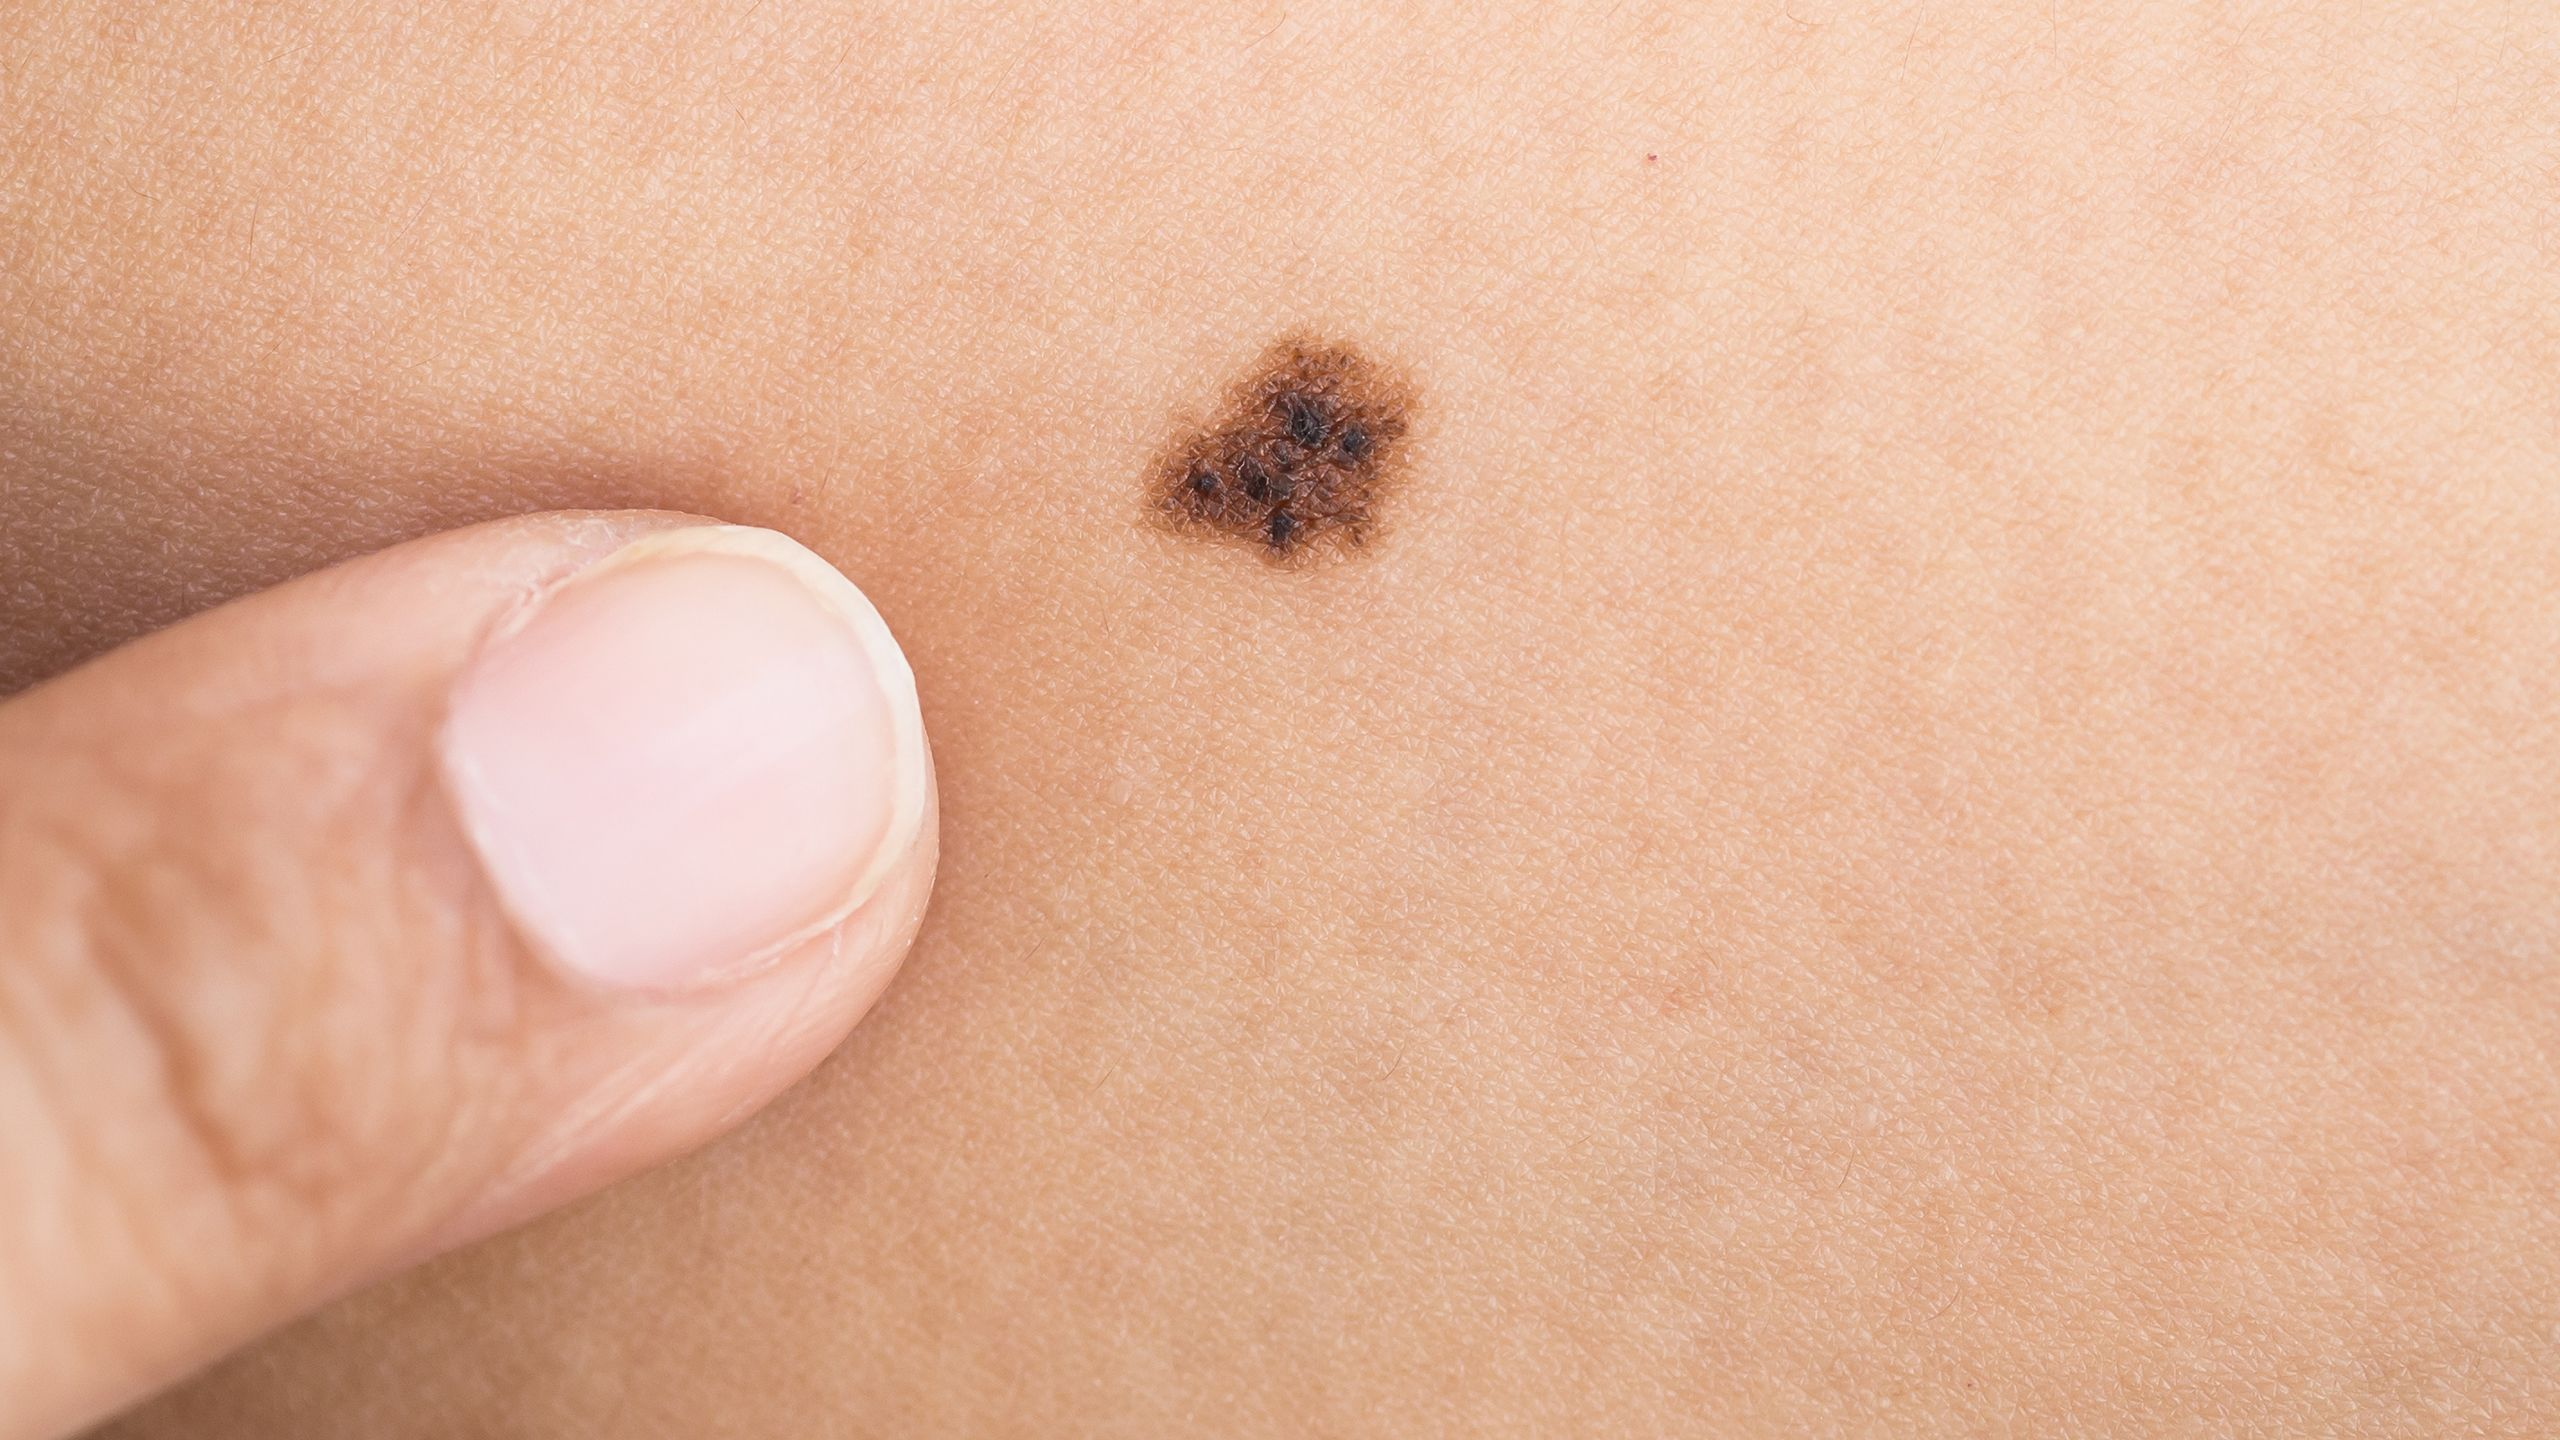 What to do if moles are inflamed 55